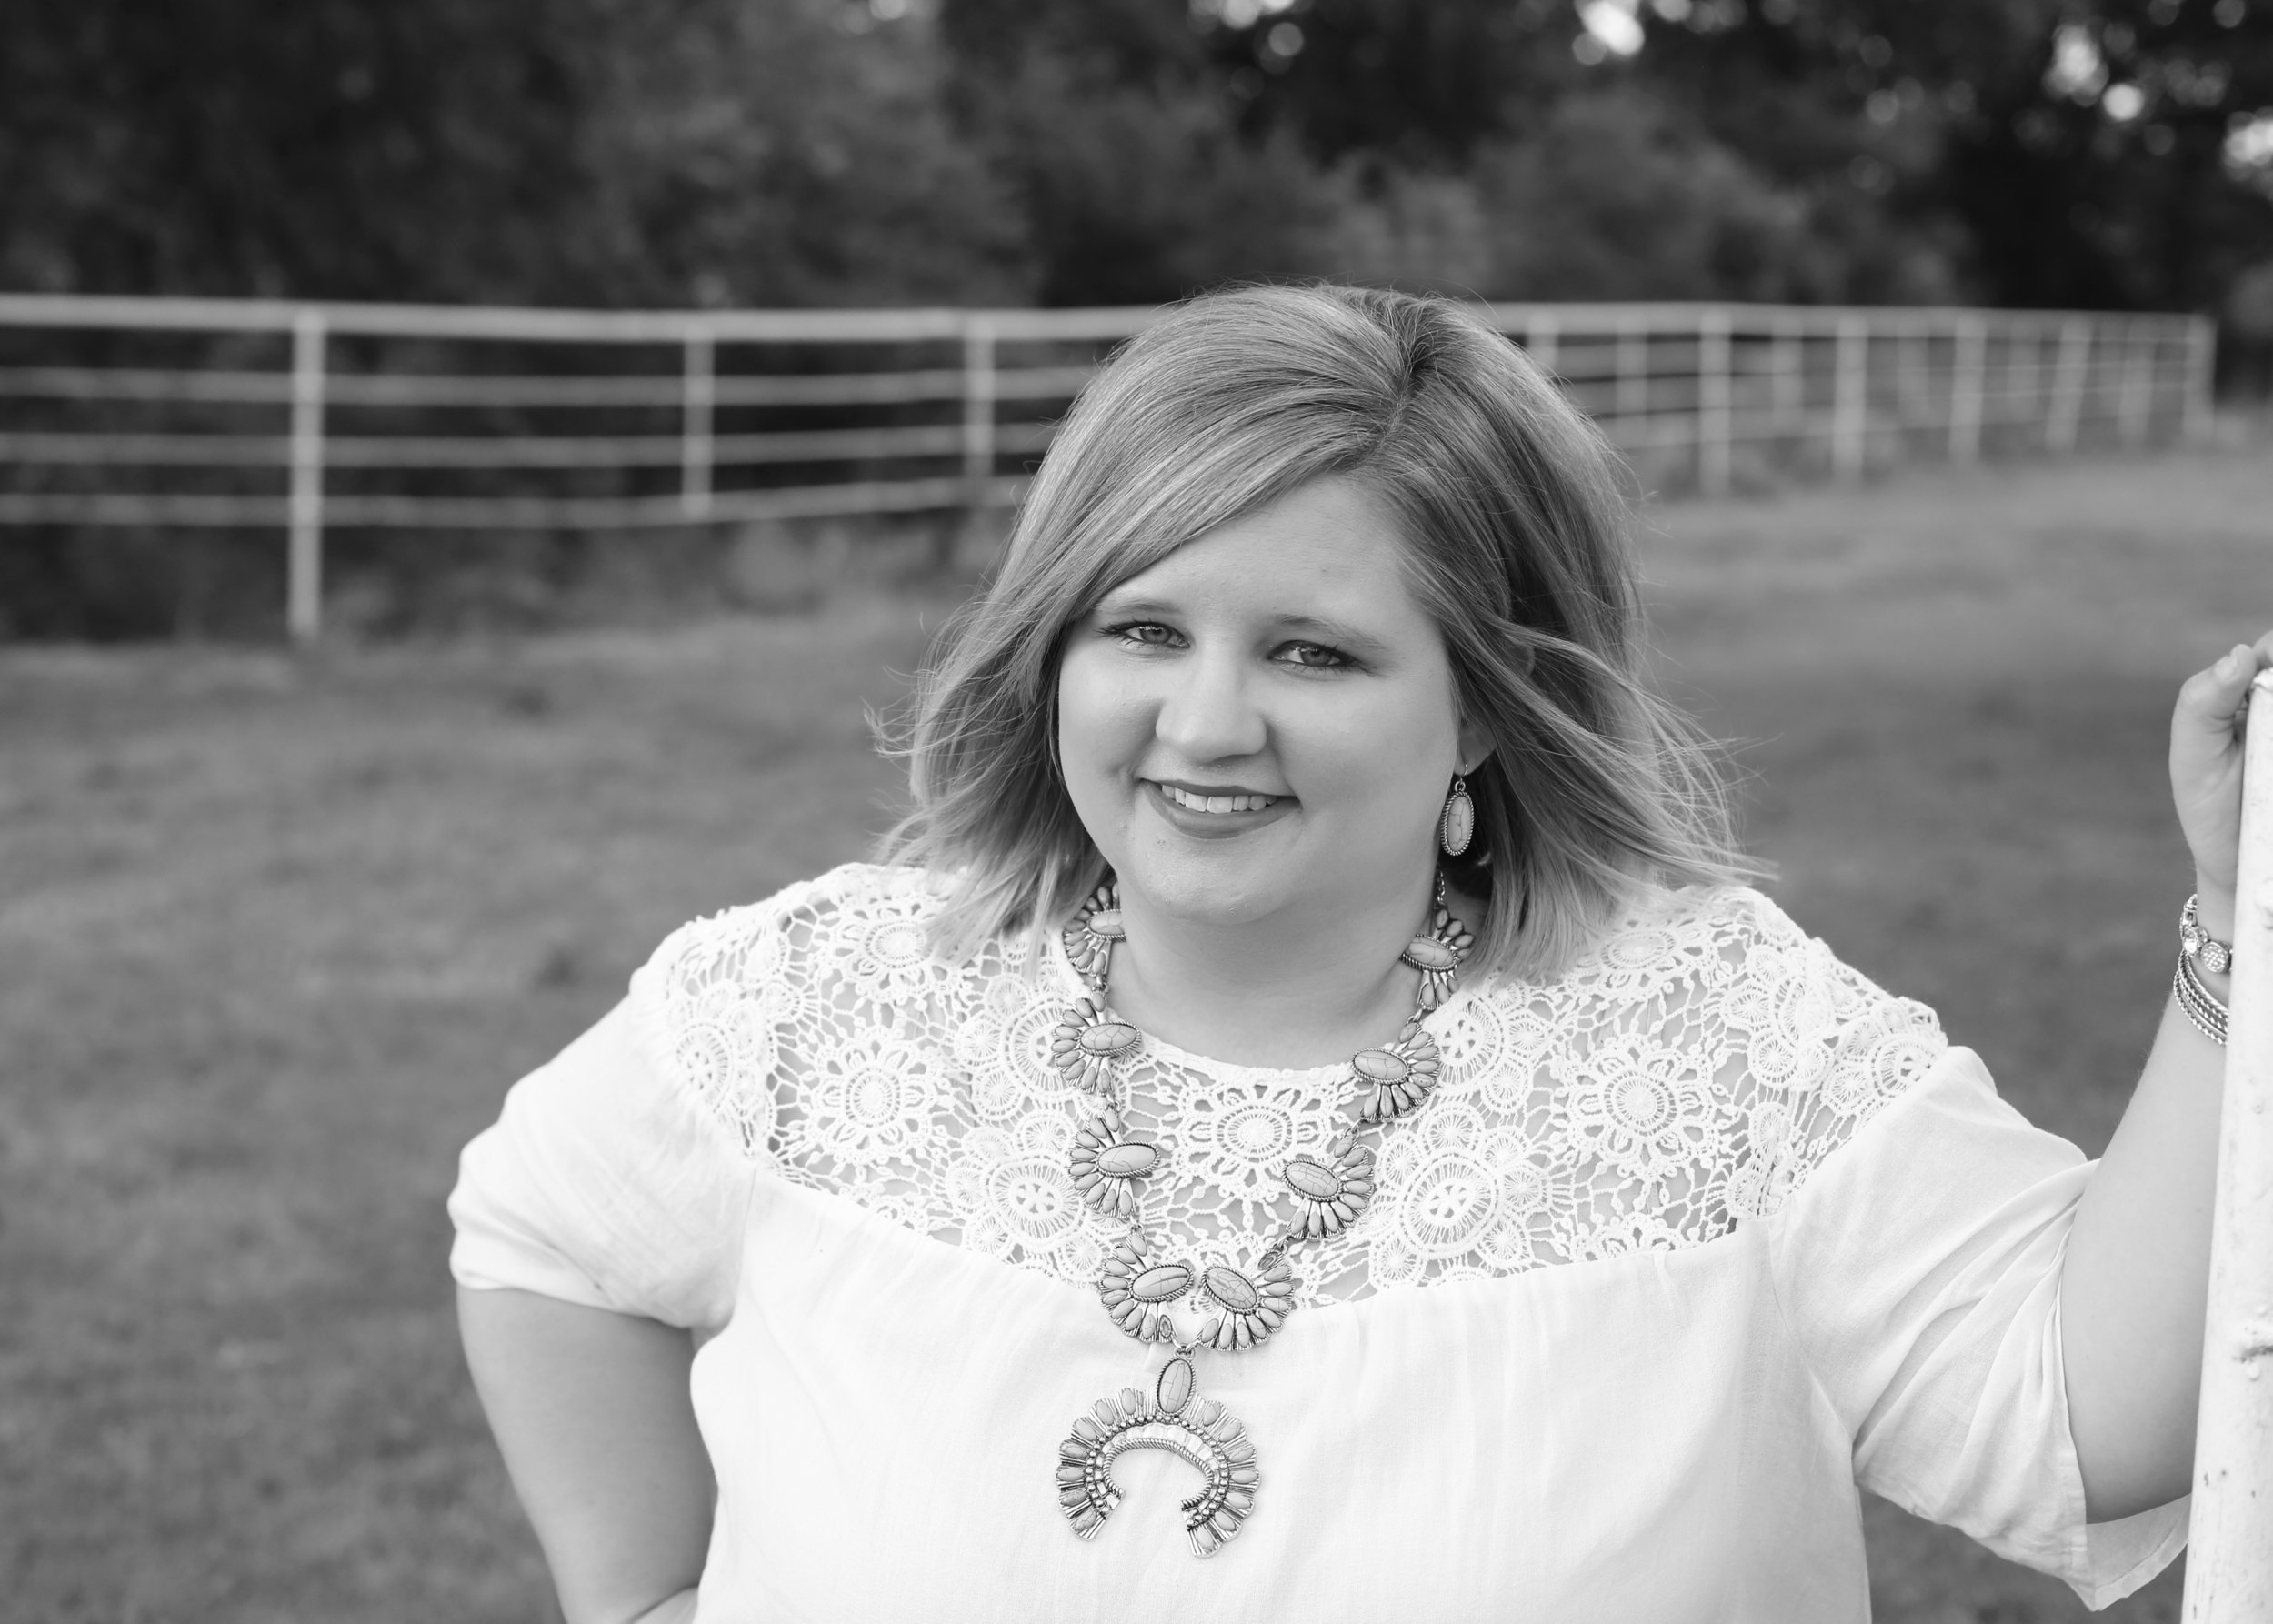 I am a donut loving, vintage trailer obsessed, turquoise jewelry hoarder AND photographer located in central Oklahoma. Welcome to b.davis photography!  Read more about me!